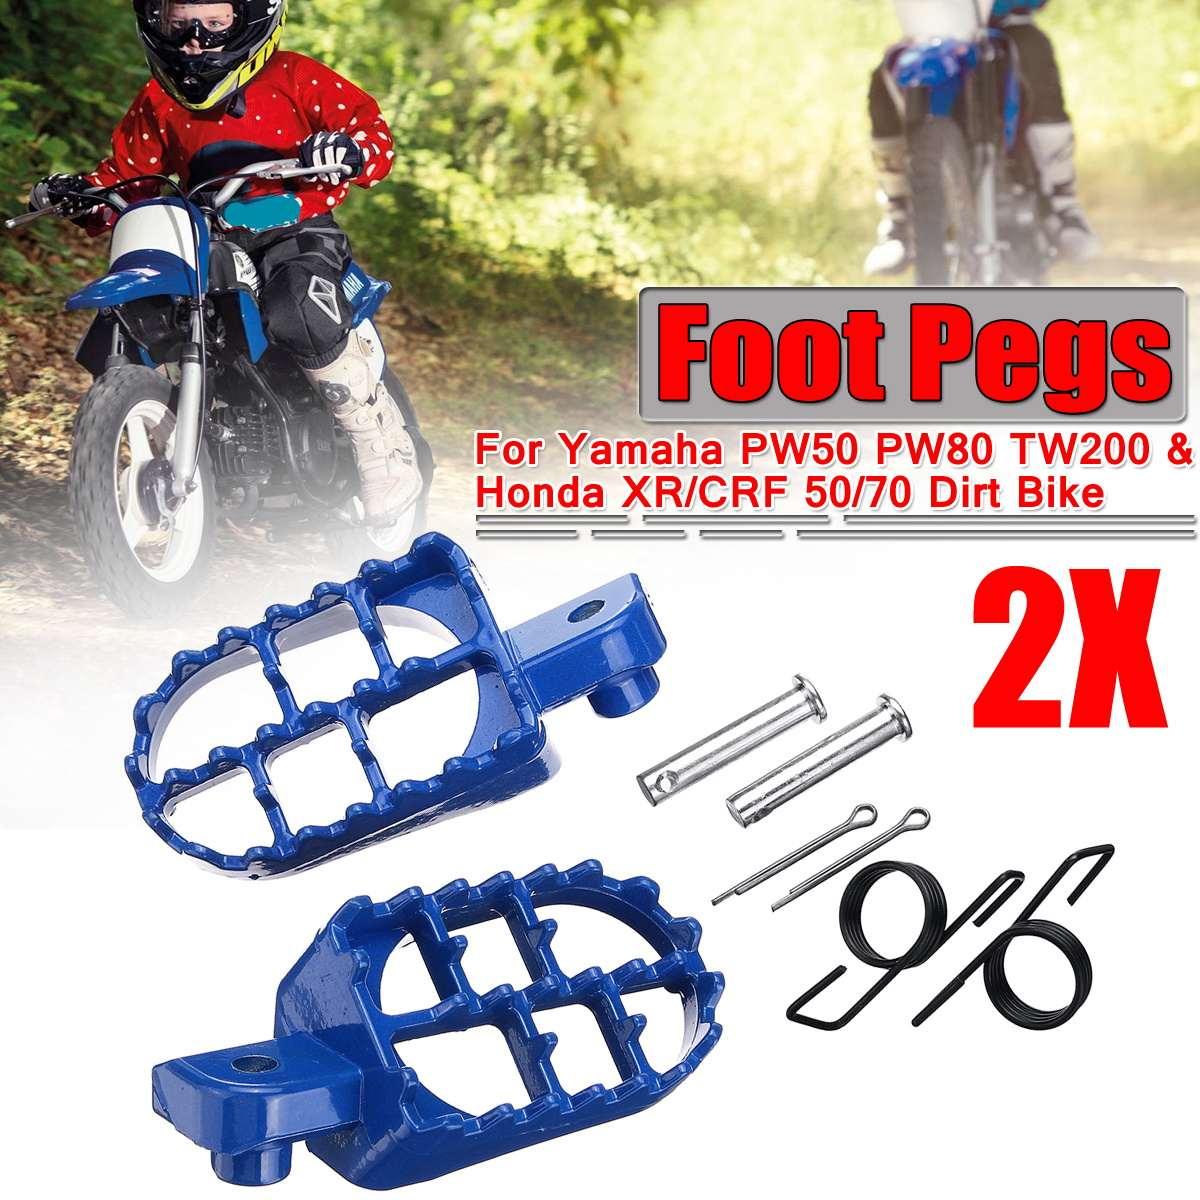 A Pair Universal Motorcycle Foot Pegs Pit Dirt Bike Motorbike Foot Rests Footrest For Yamaha PW50 PW80 TW200 For Honda XR/CRF